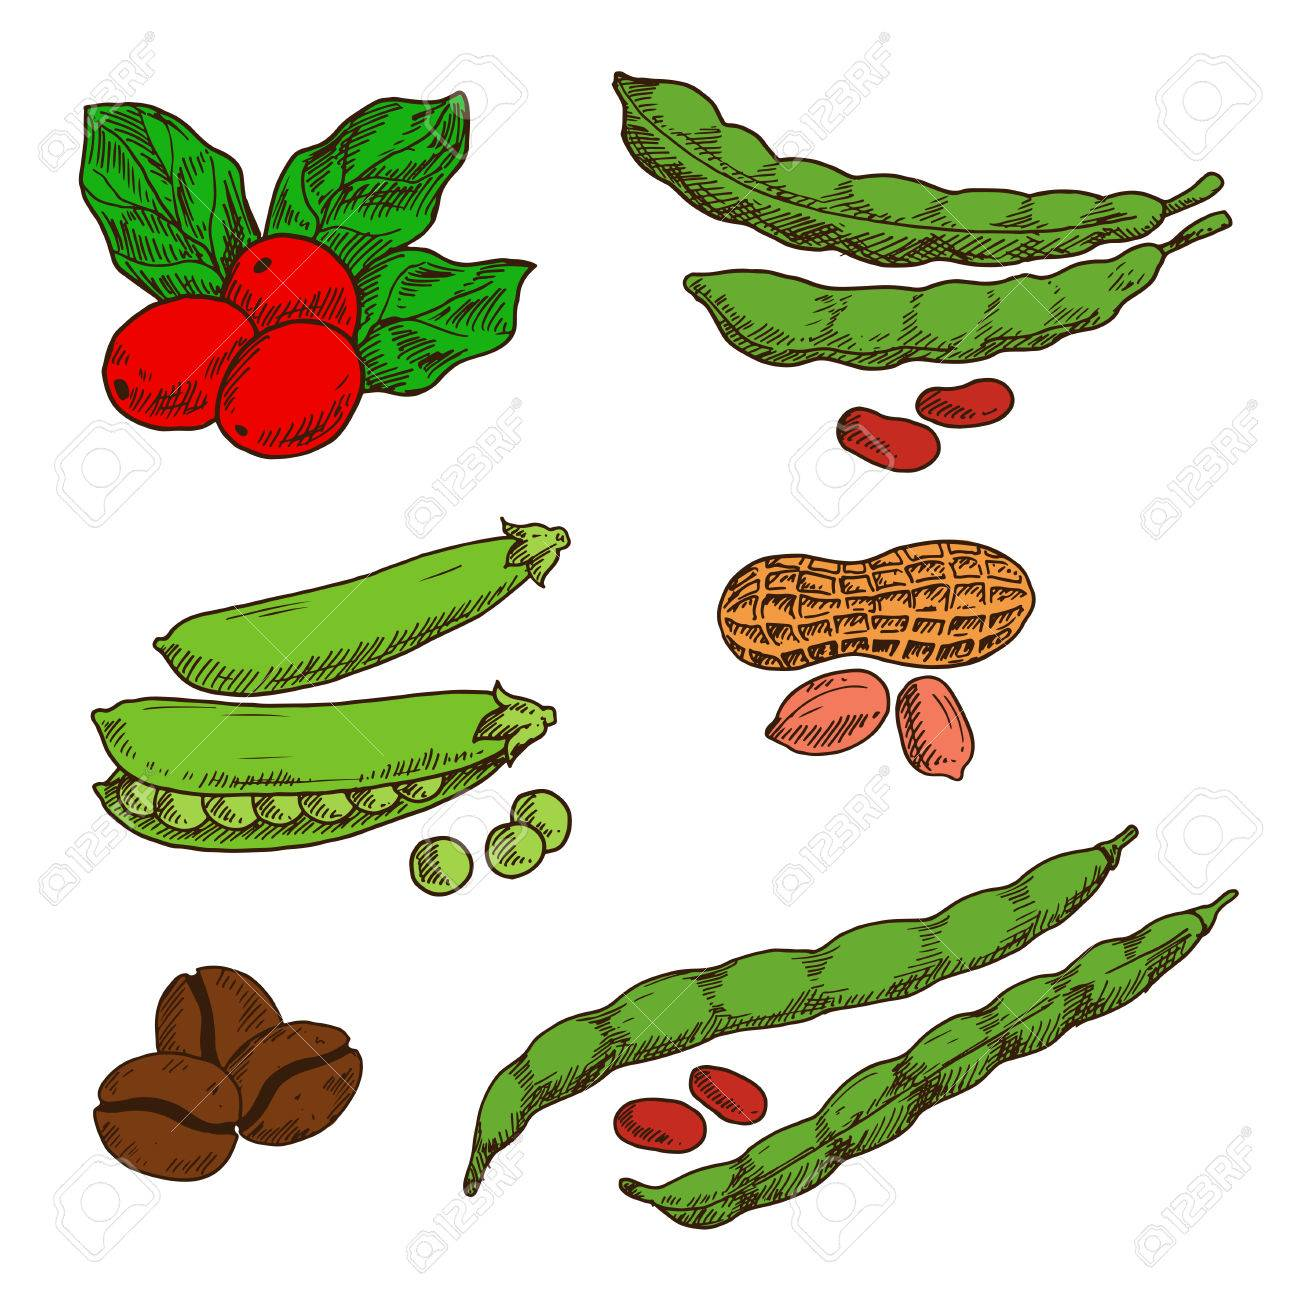 Healthful And Nutritious Peanuts Green Pods And Grains Of Sweet